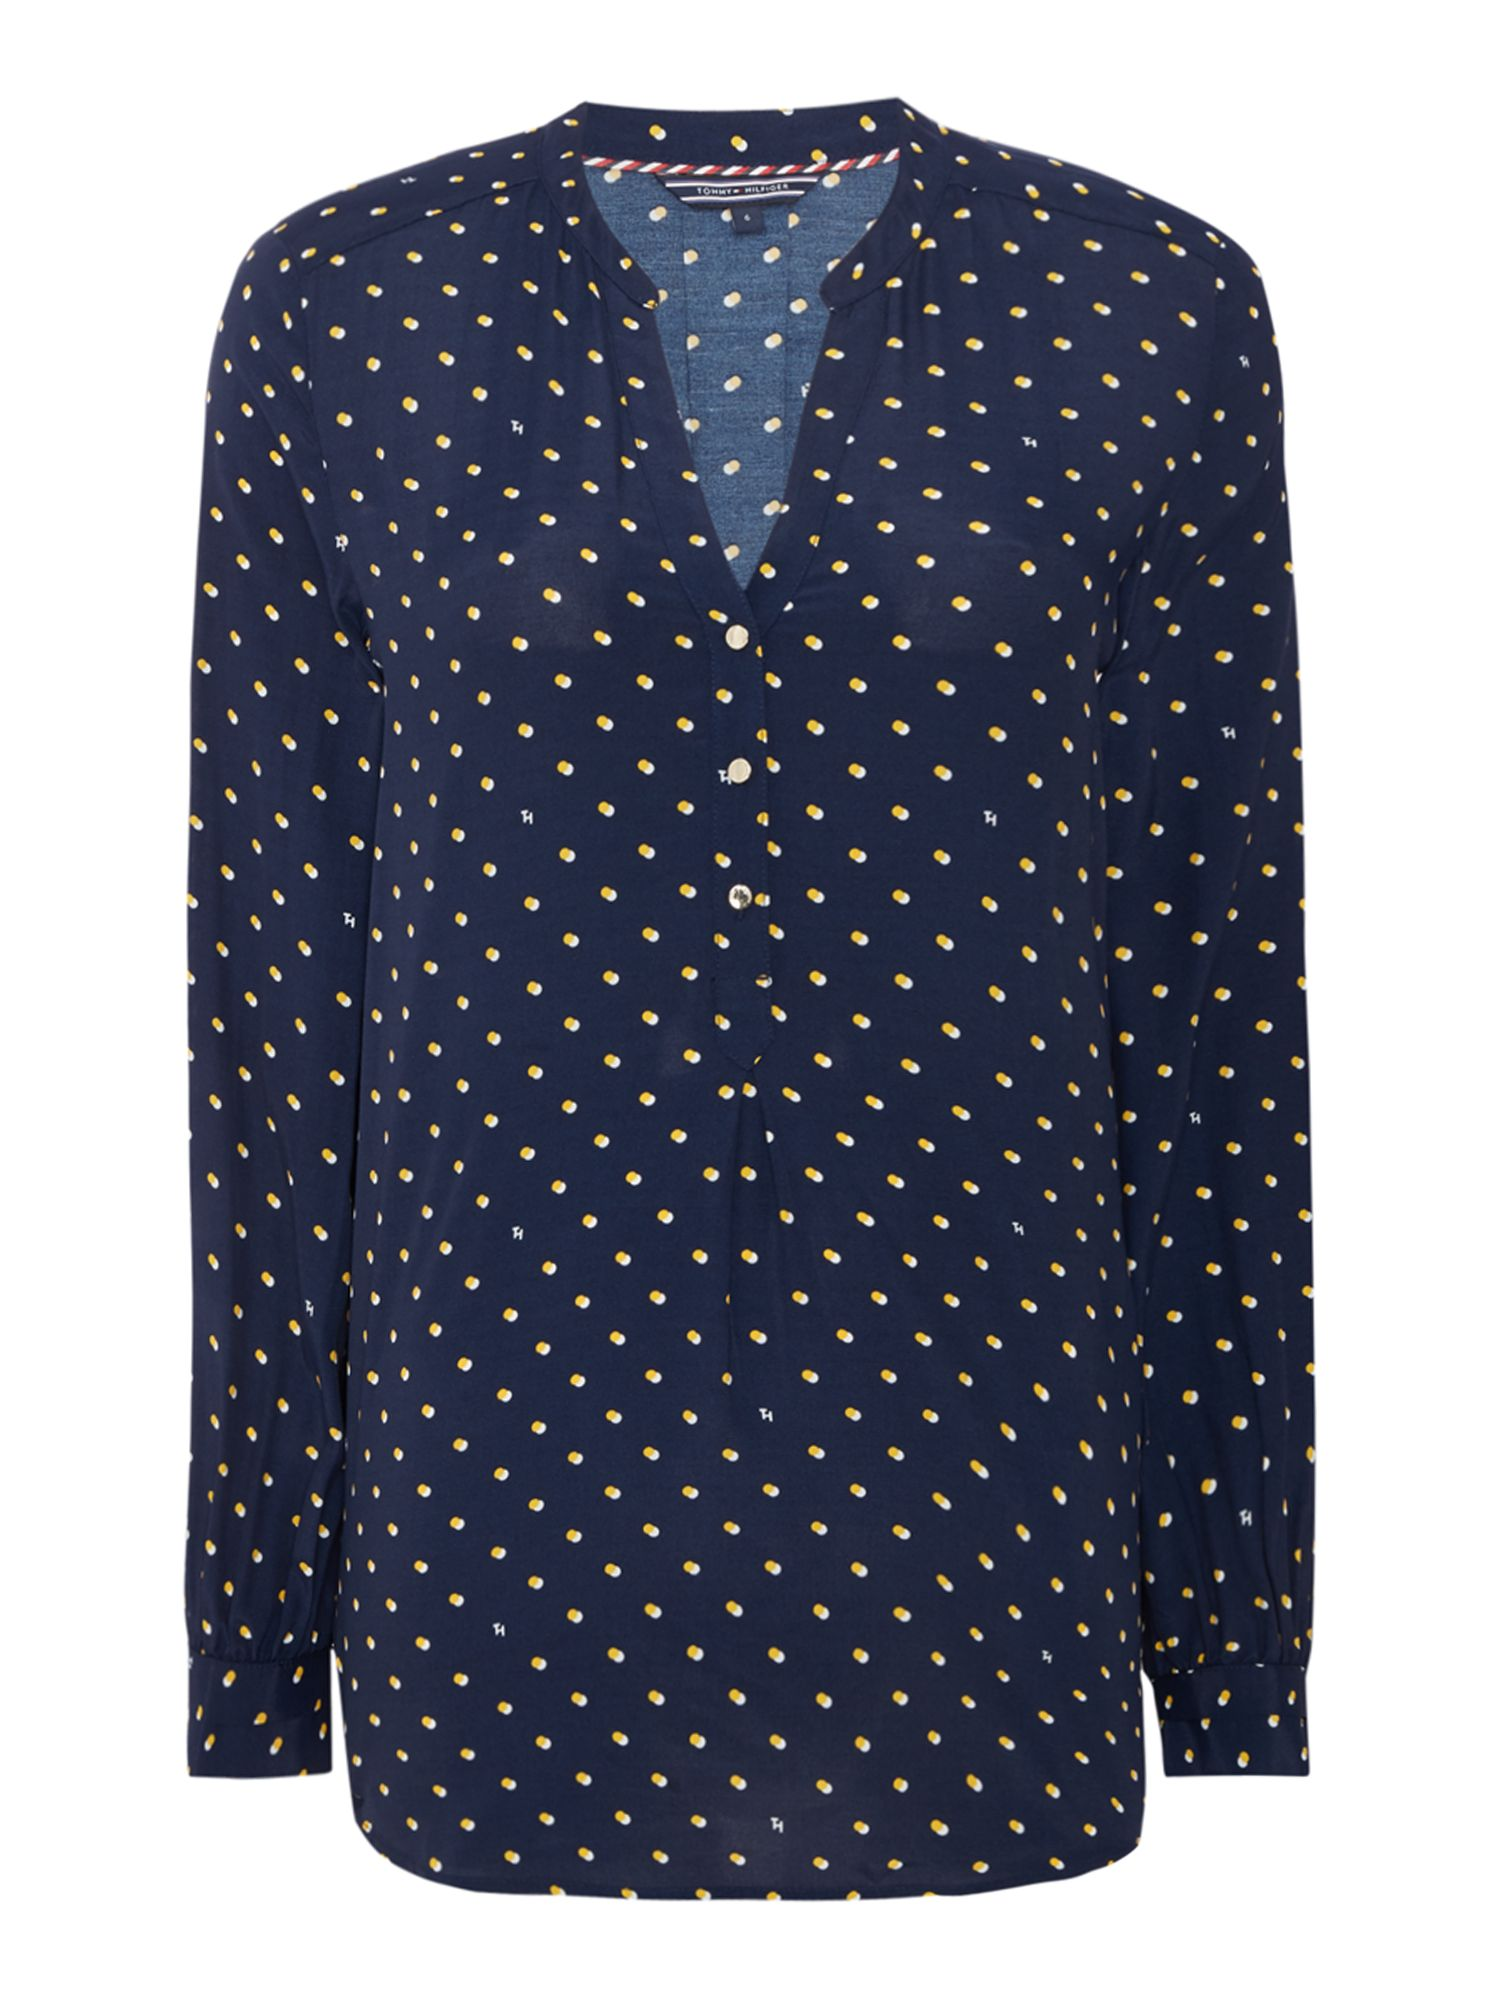 Miran Blouse by Tommy Hilfiger